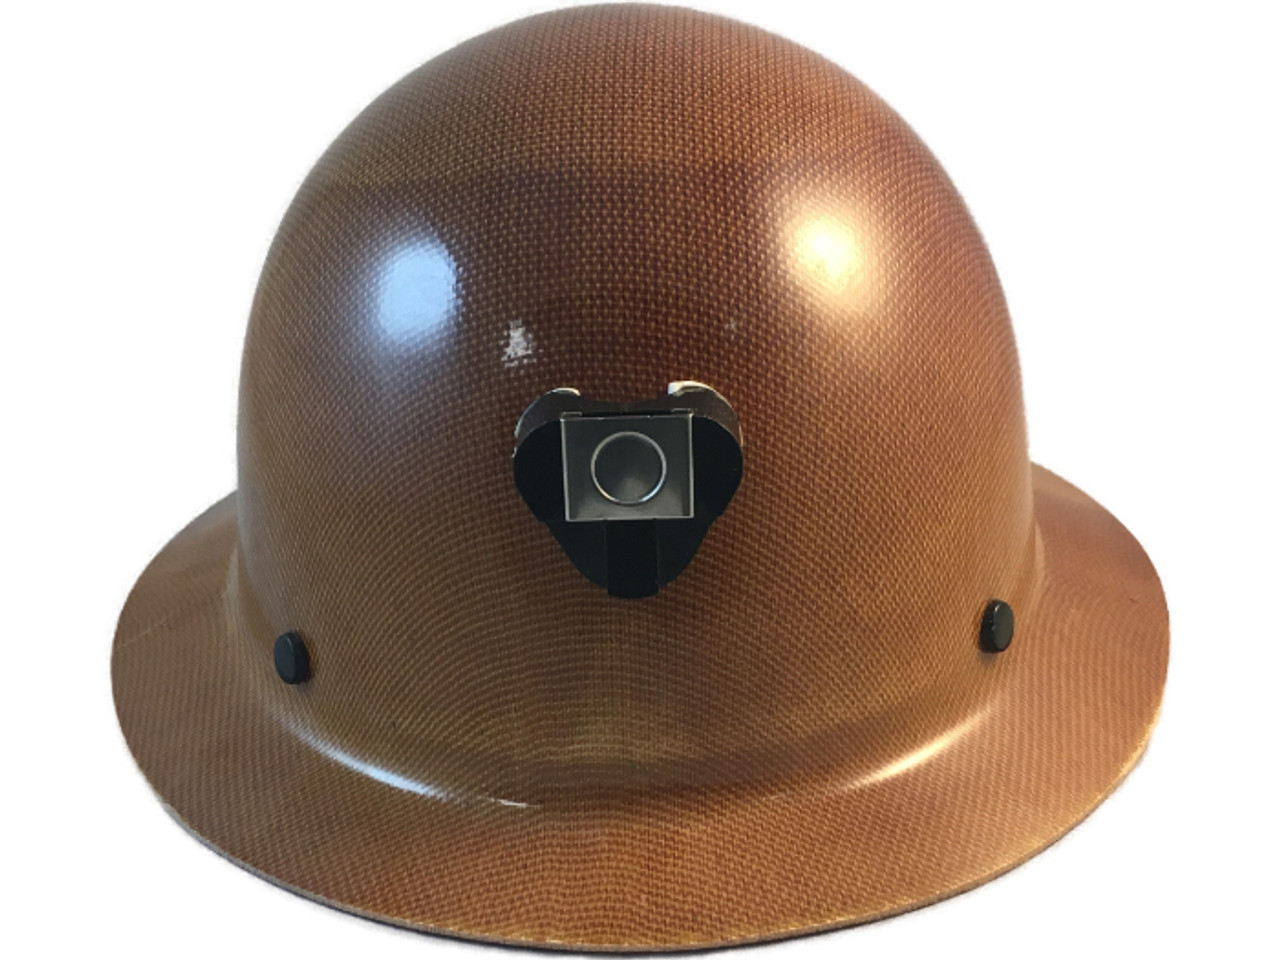 MSA # 460389 Skullgard Full Brim Hard Hat With STAZ ON Liners Natural Tan  With Light Clip